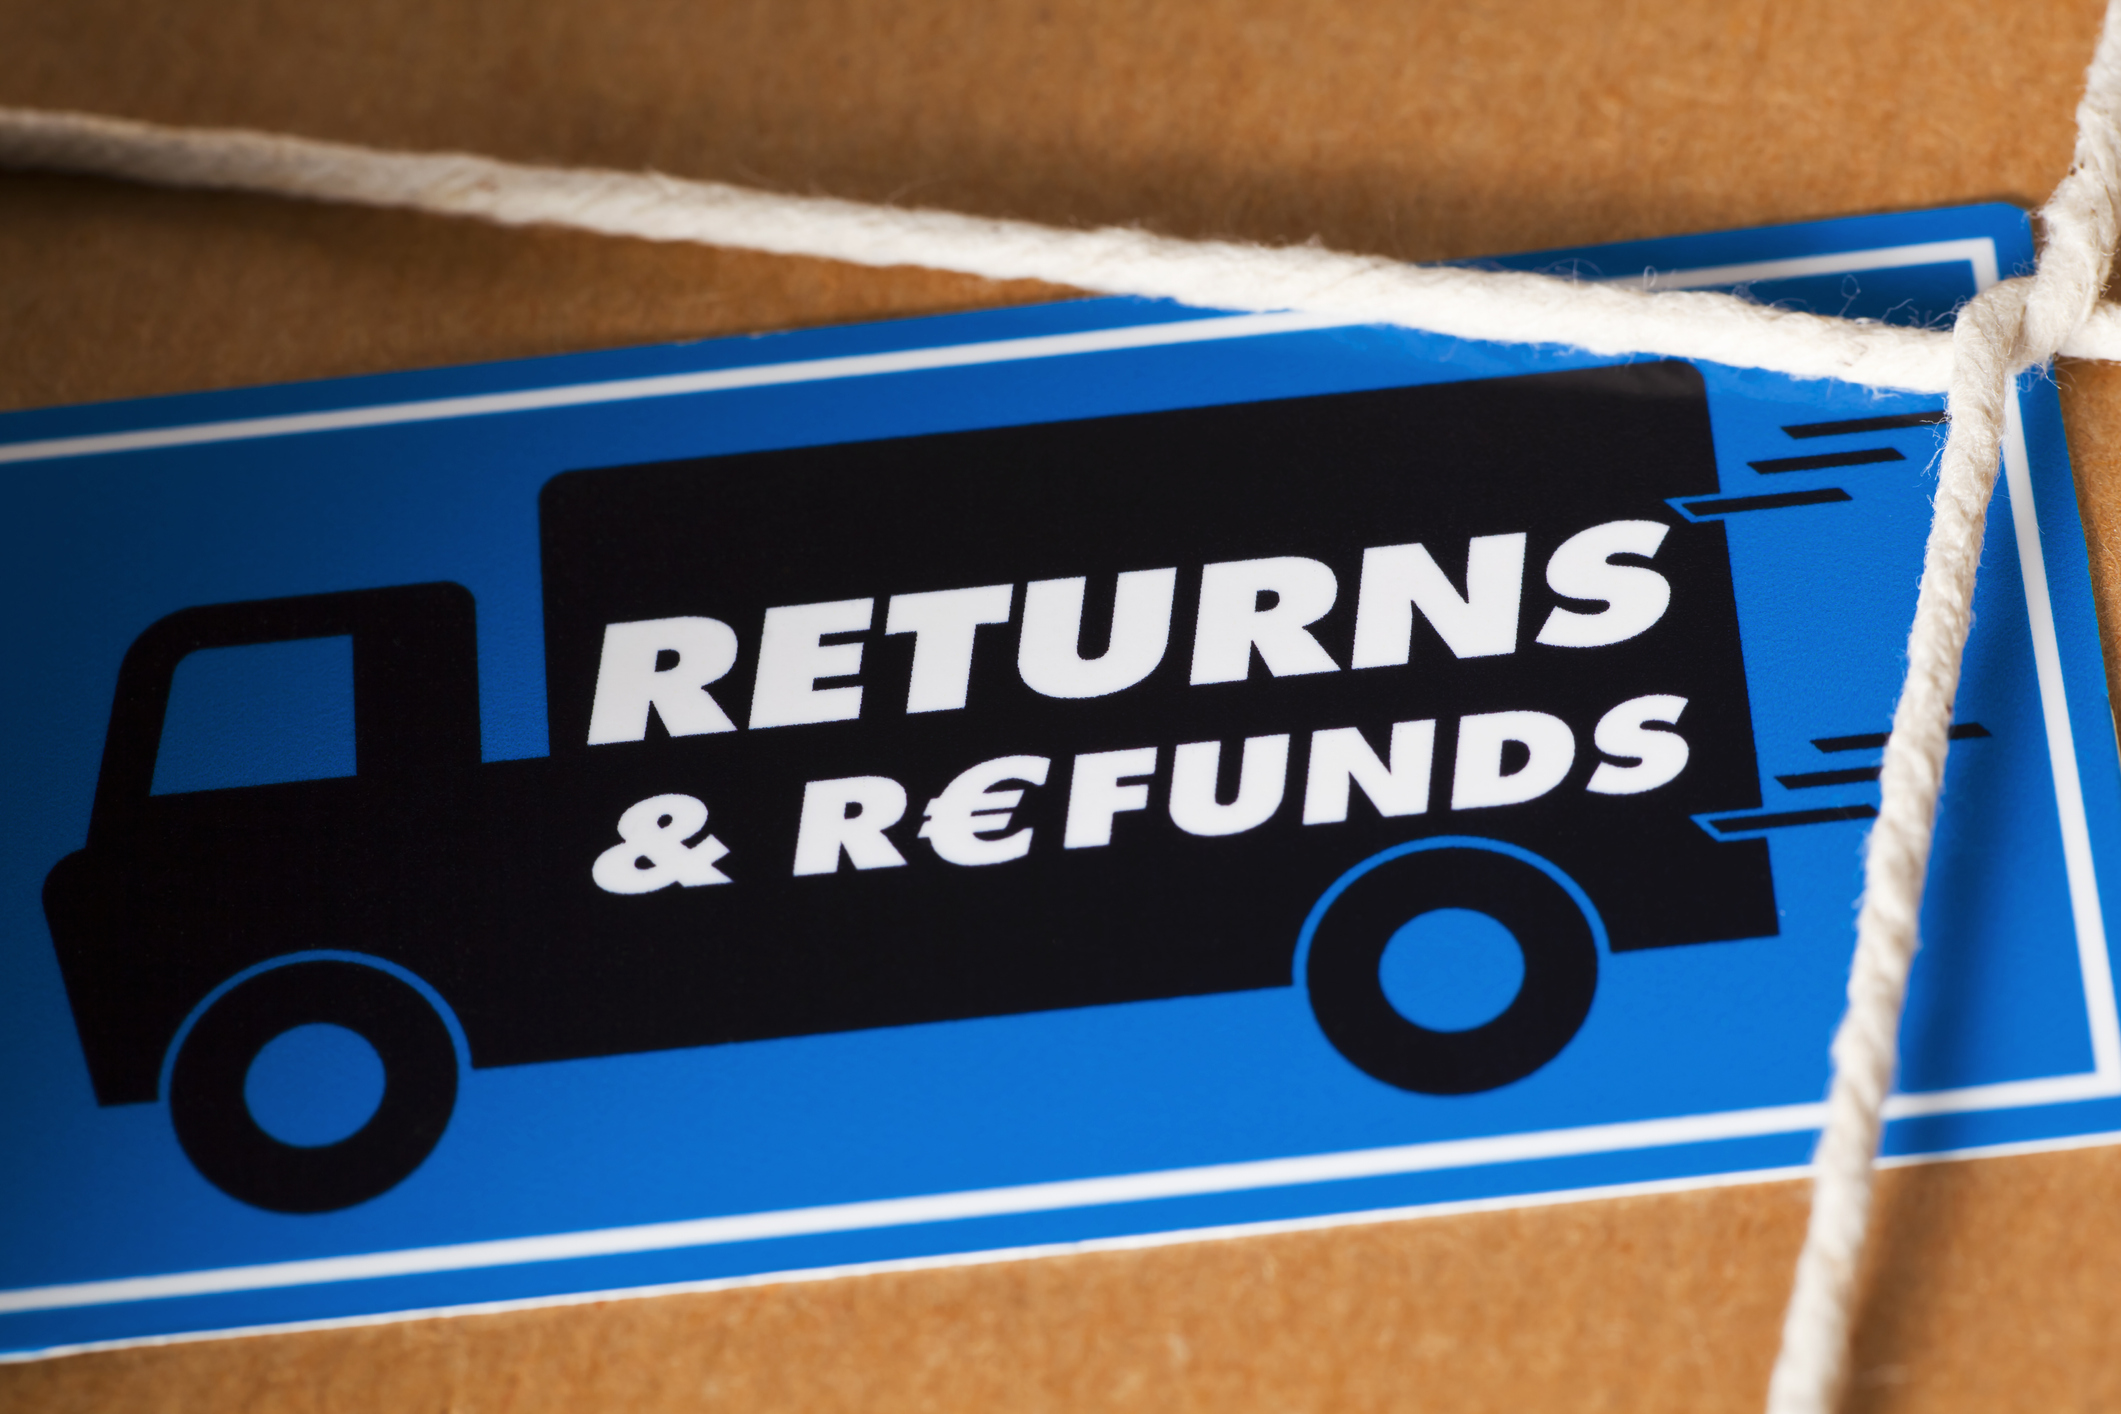 Return the goods by a courier for a Euro Refund. Close up of a brown paper parcel, tied with string and a Return & Refunds sticker.